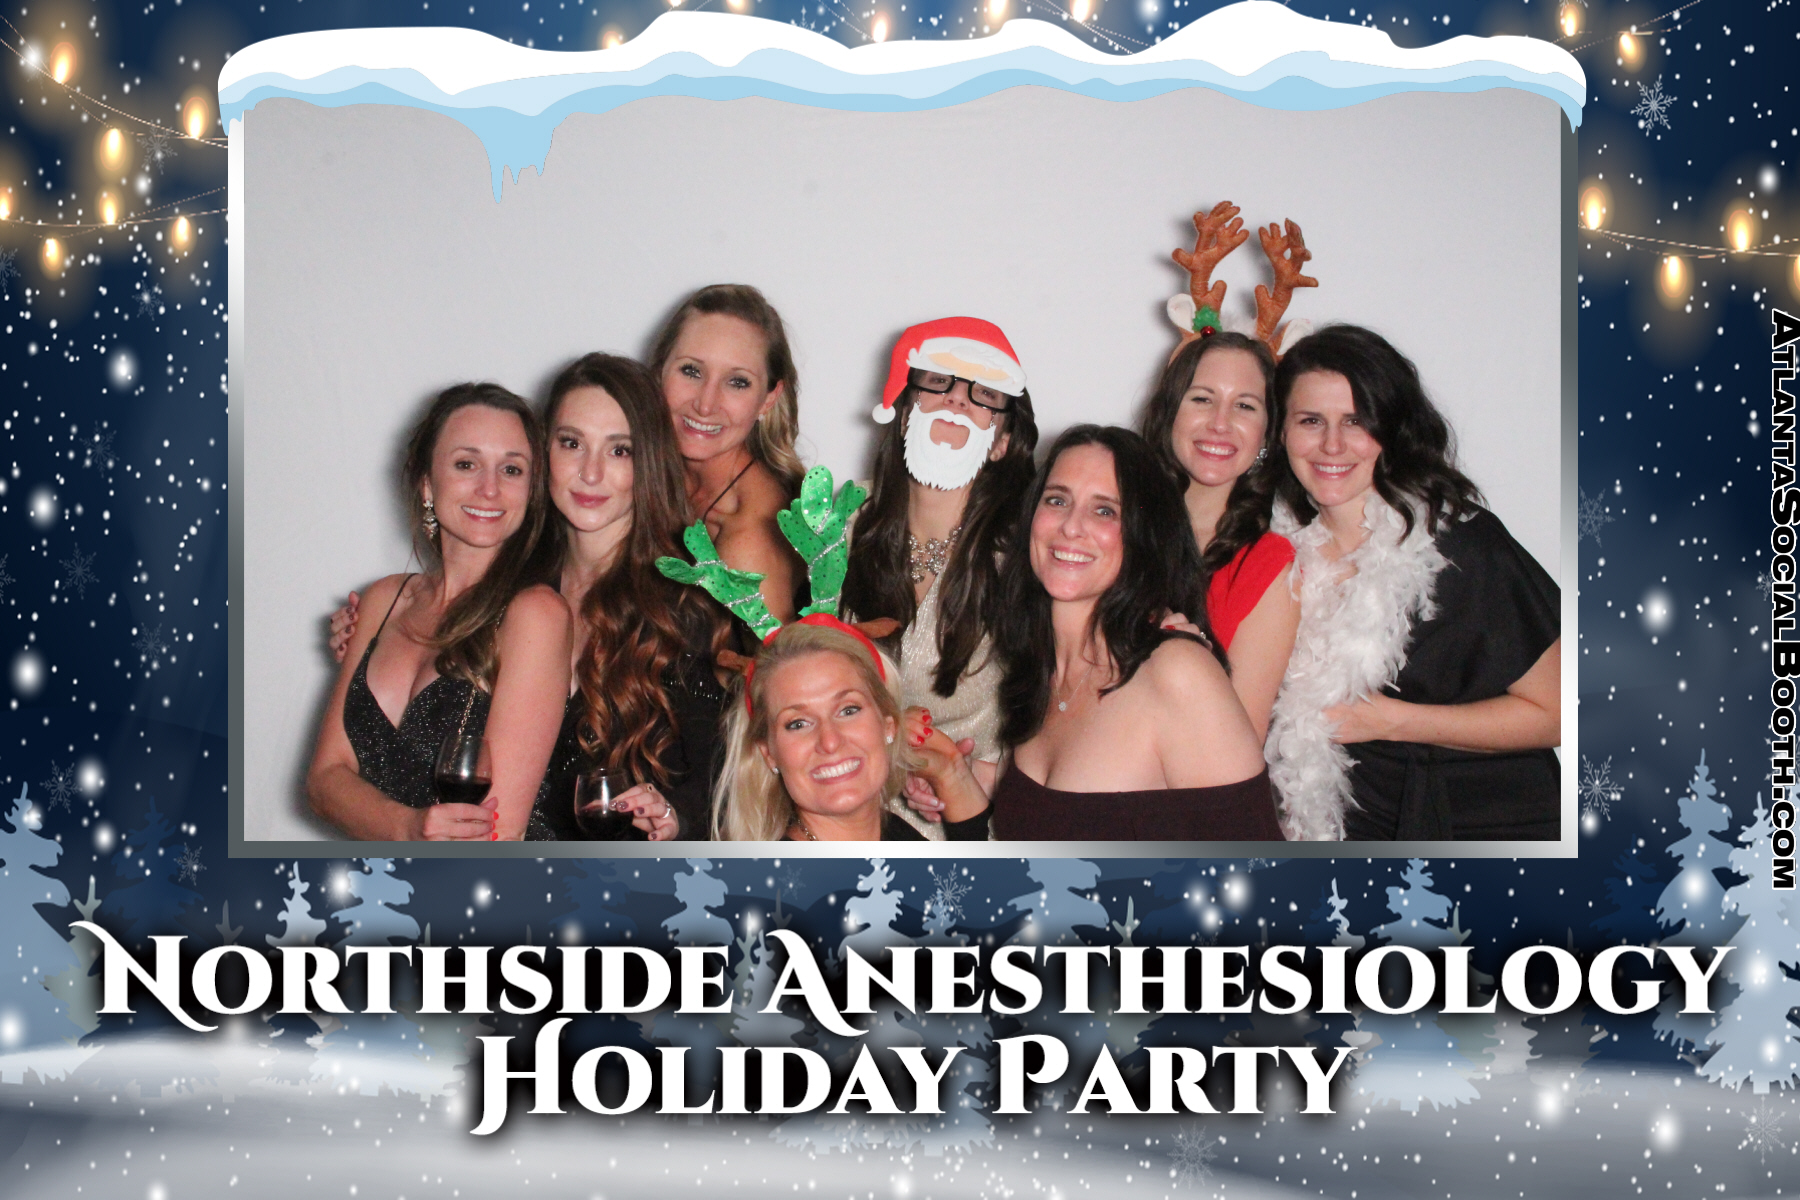 Northside Anesthesiology Holiday